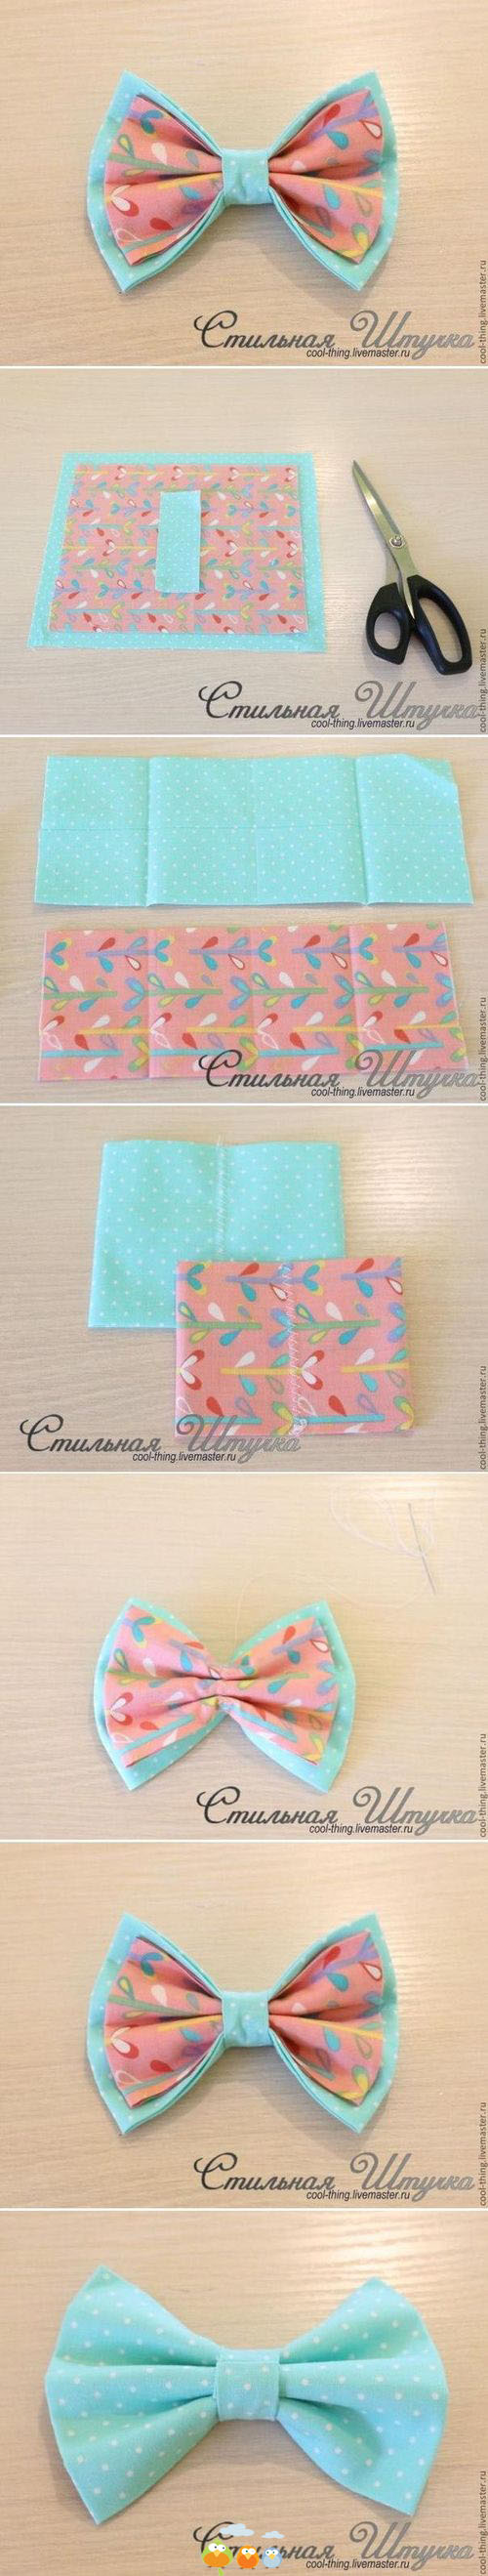 fabric-bow-ideas